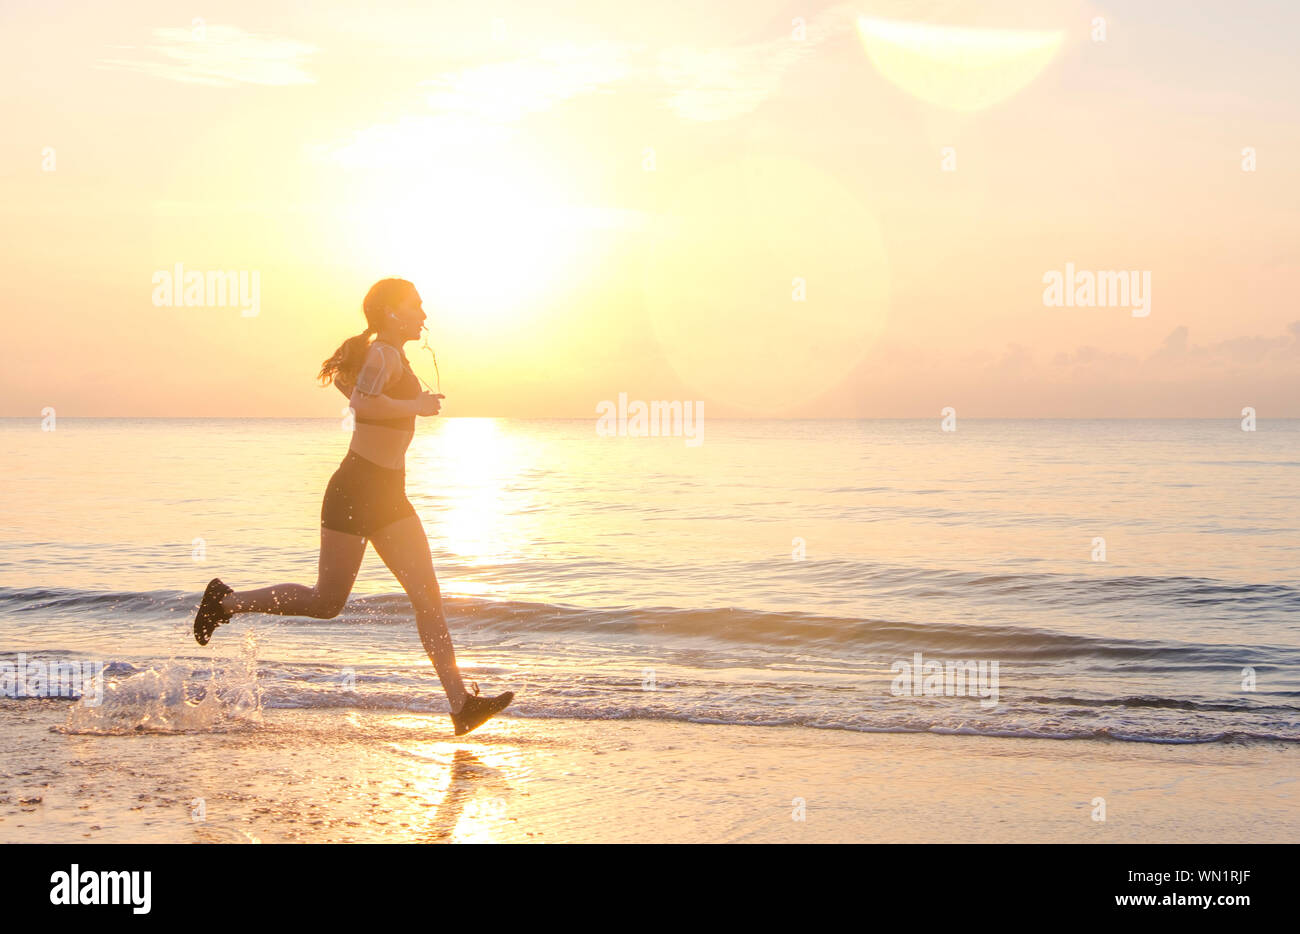 Woman jogging on beach at sunset Stock Photo